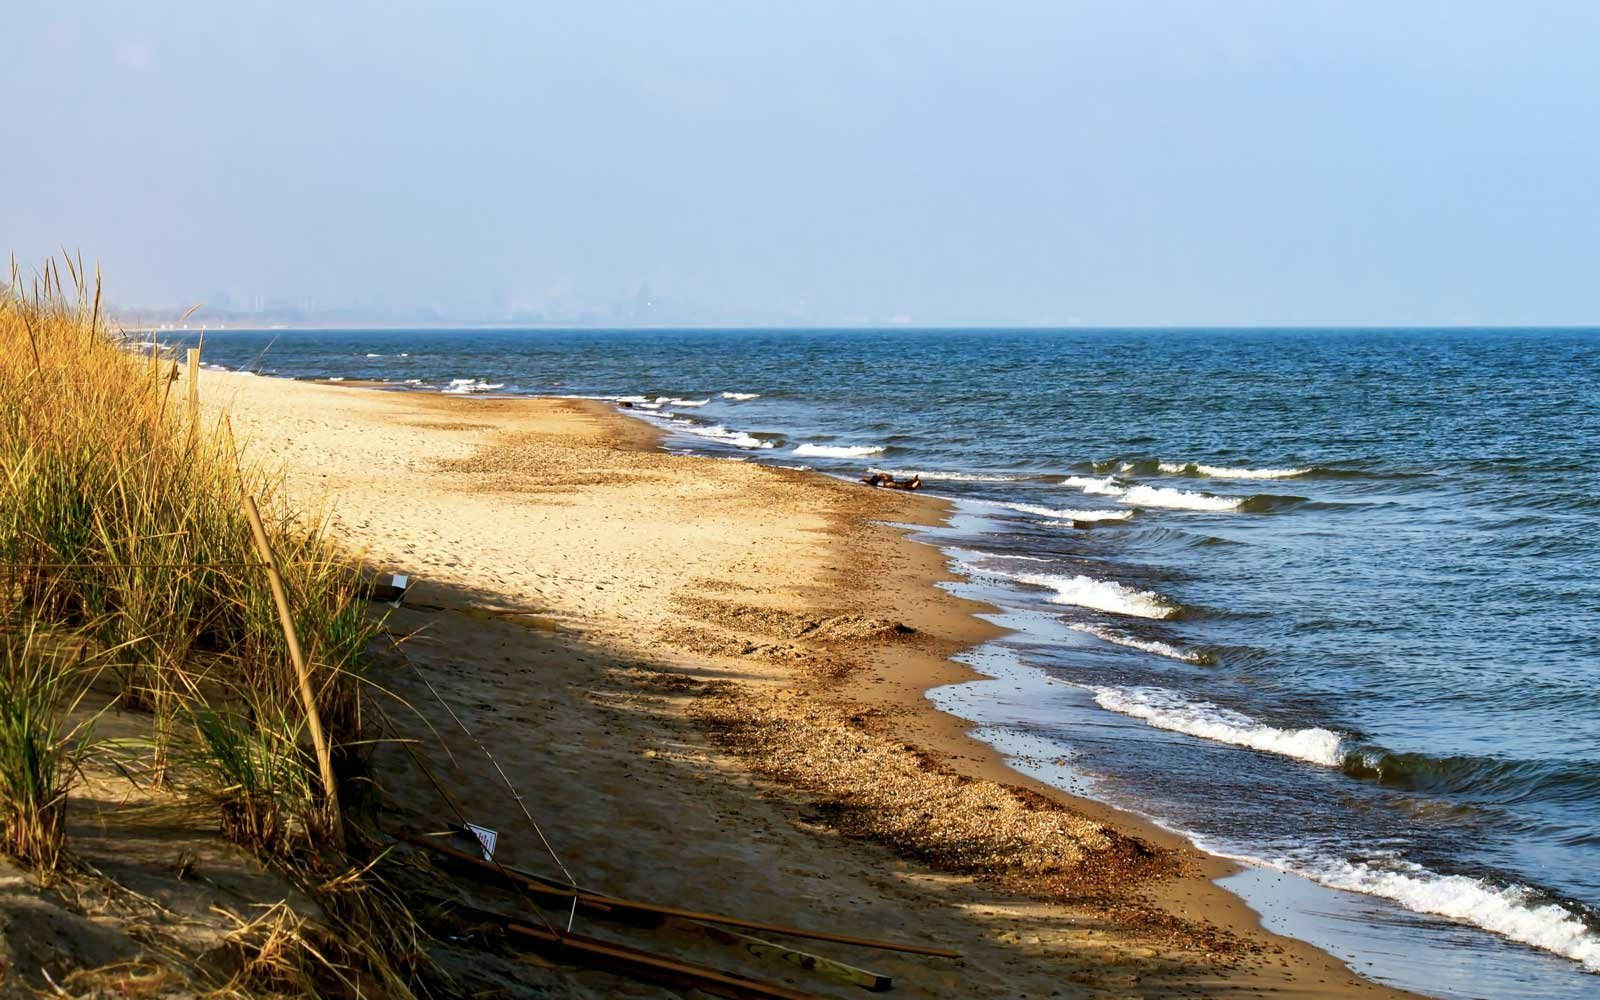 Shoreline of the Indiana Dunes Lakeshore featuring autumn colors and beautiful blue water along sandy beach